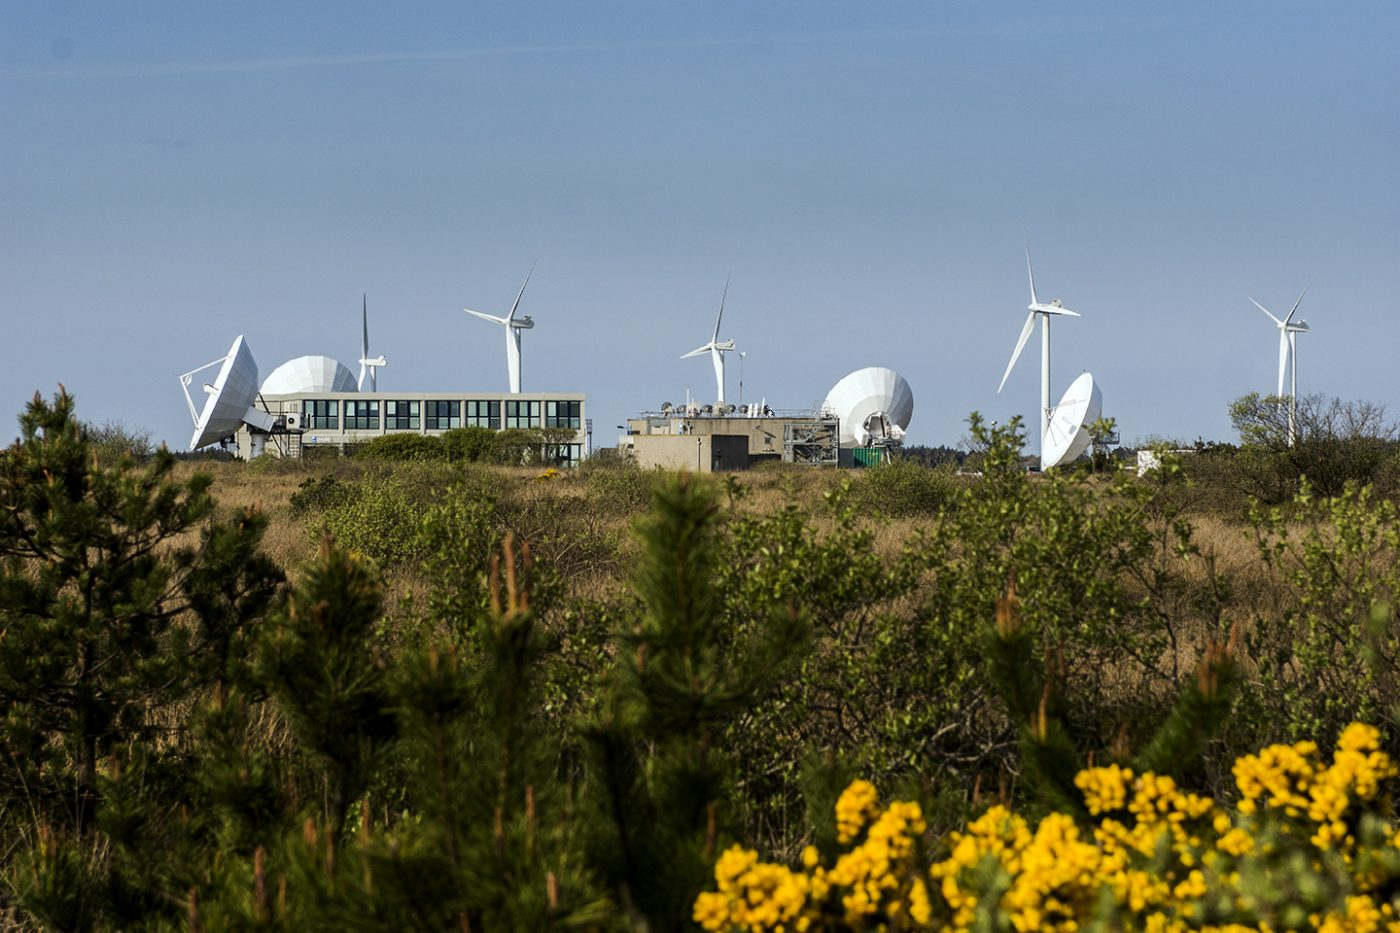 Satellites and wind turbines at Goonhilly Space Port, Cornwall.